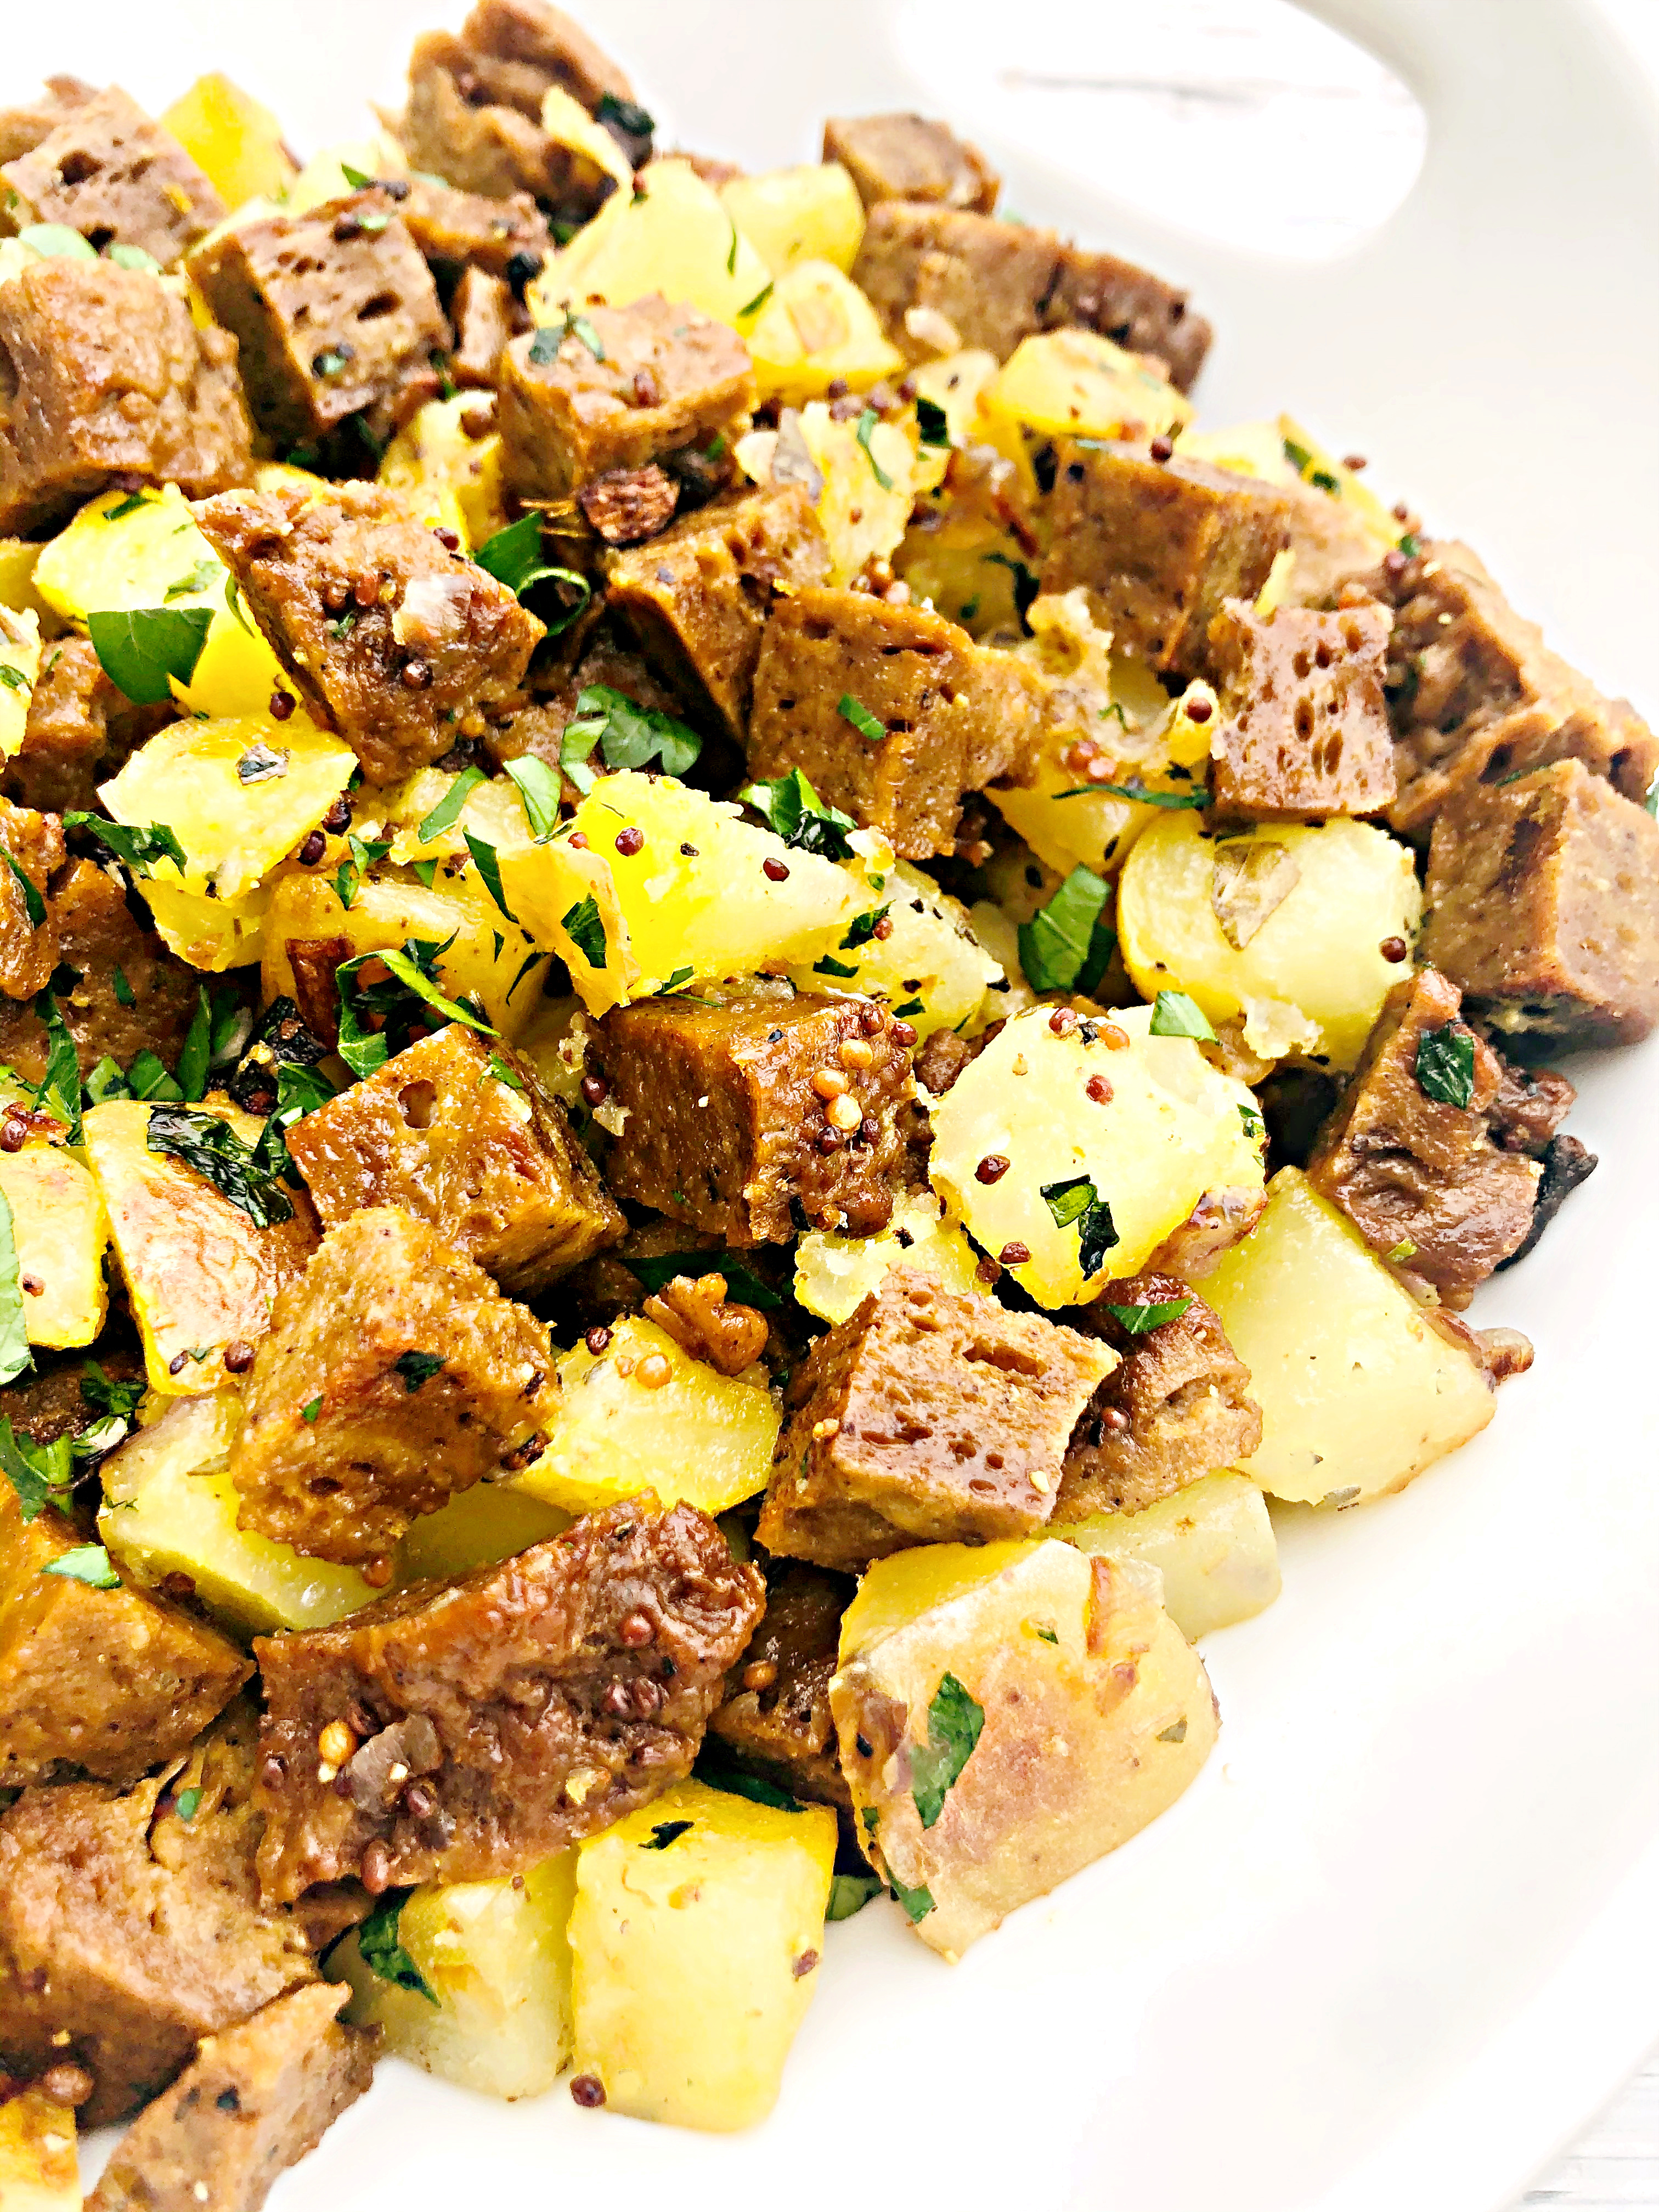 Vegan Corned Seitan Hash - A plant-based alternative to corned beef hash!  via @thiswifecooks